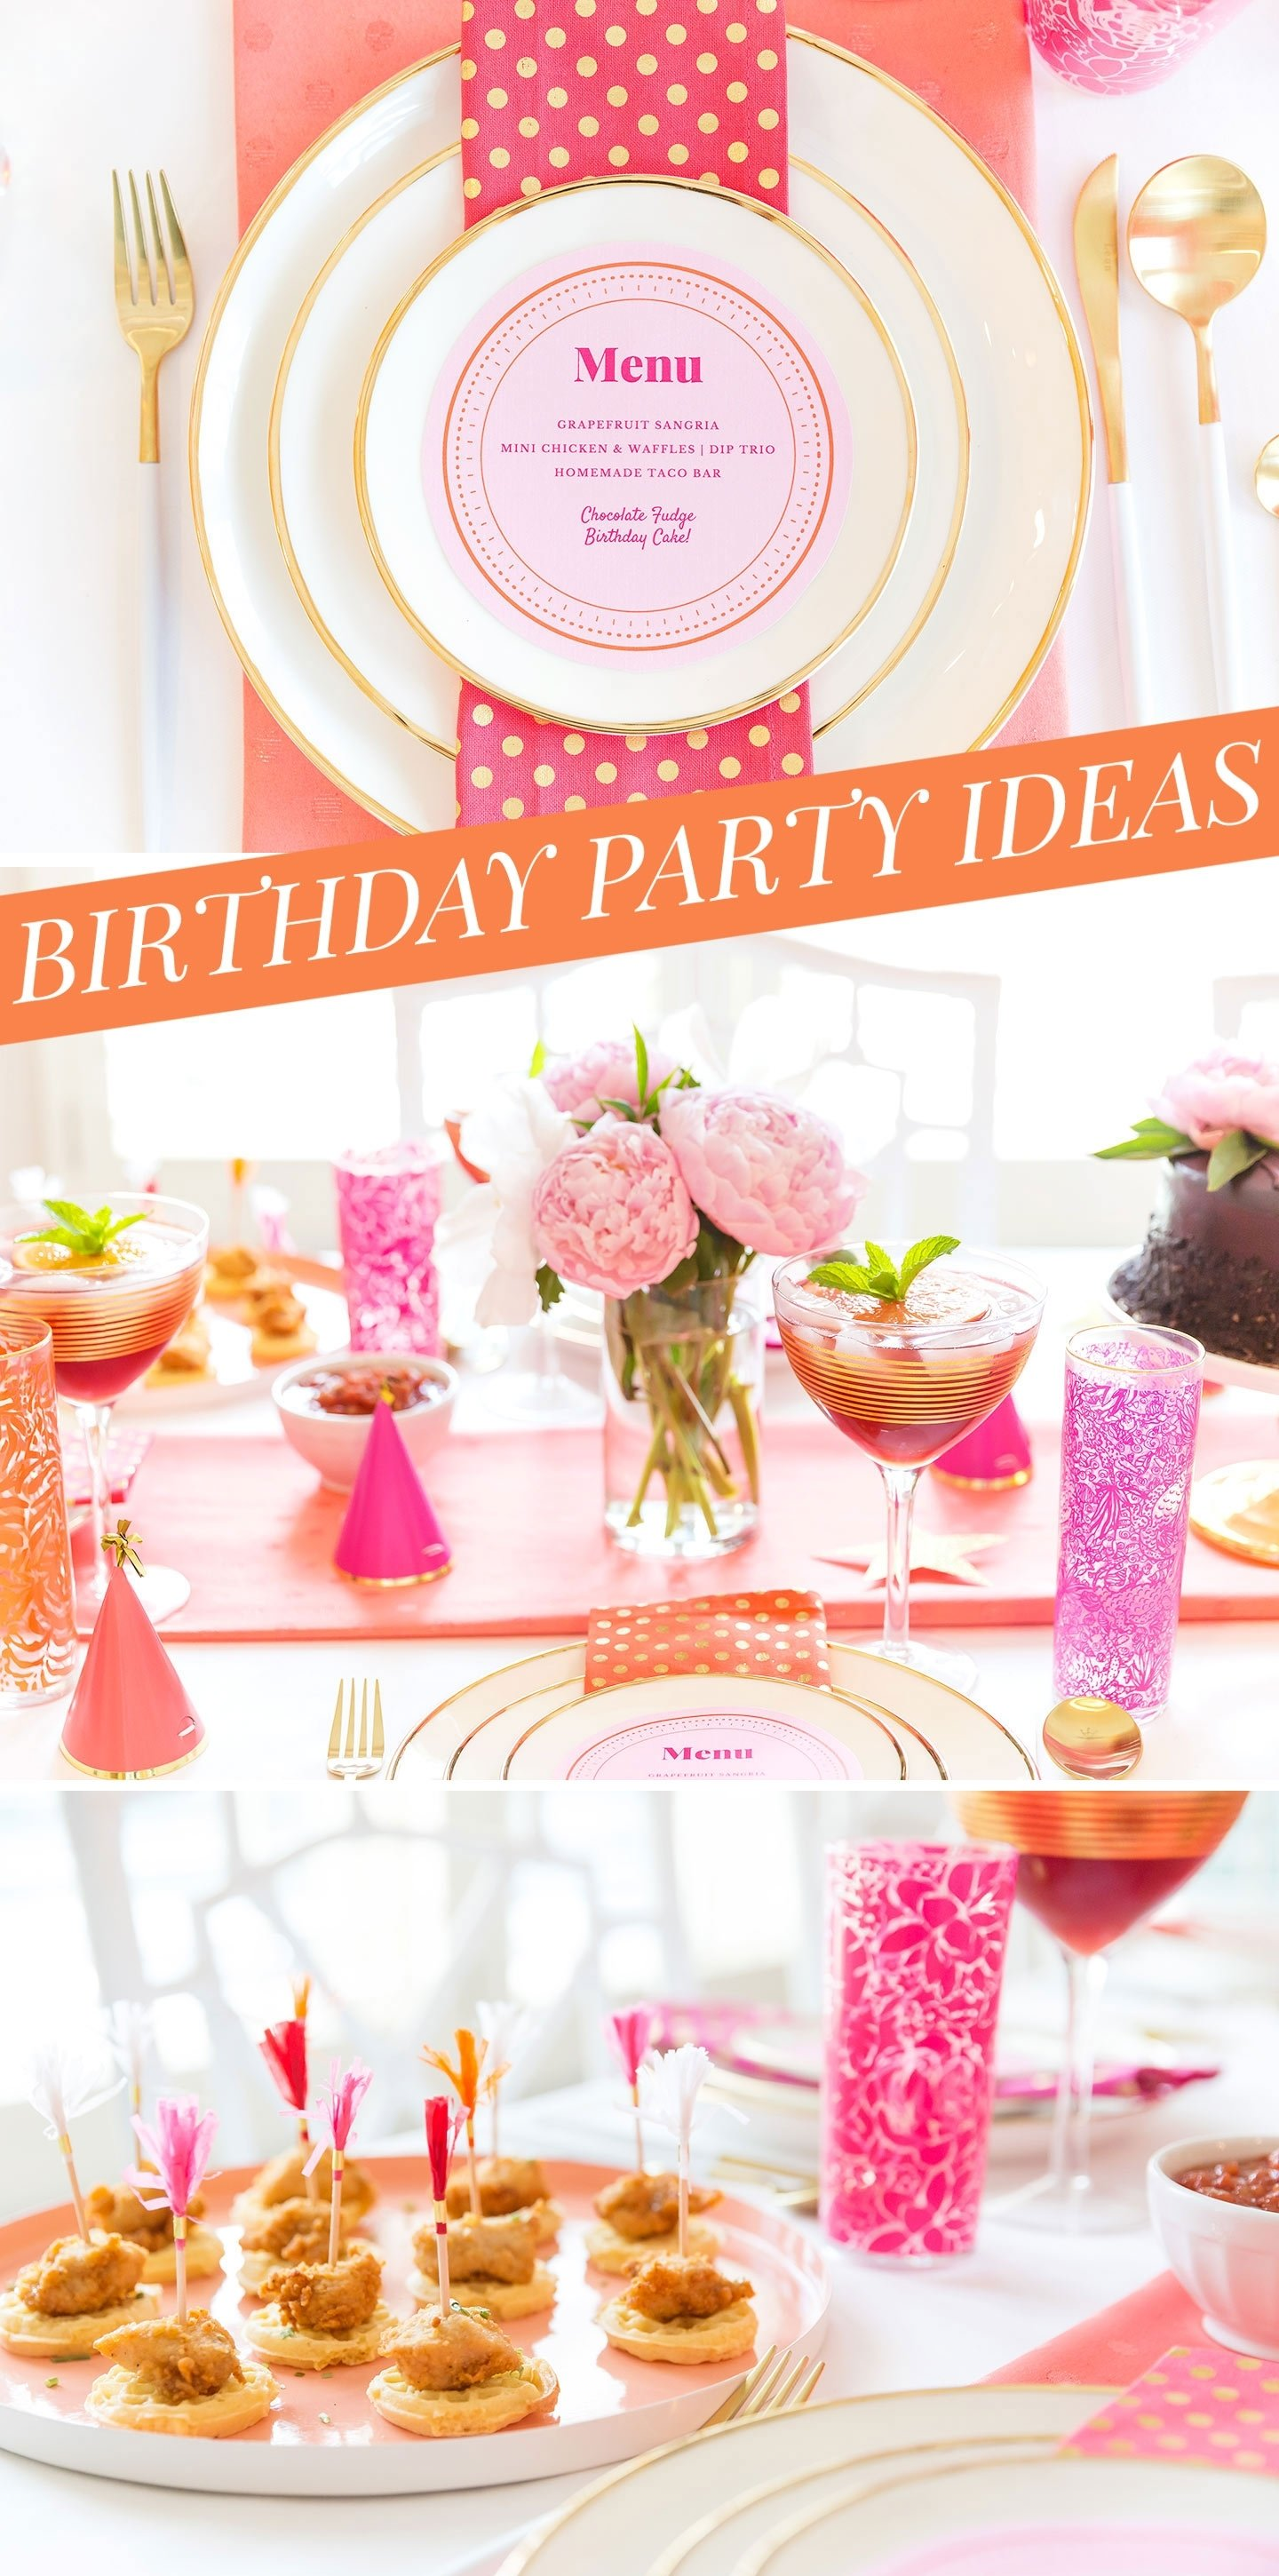 creative adult birthday party ideas for the girls | food & decor!